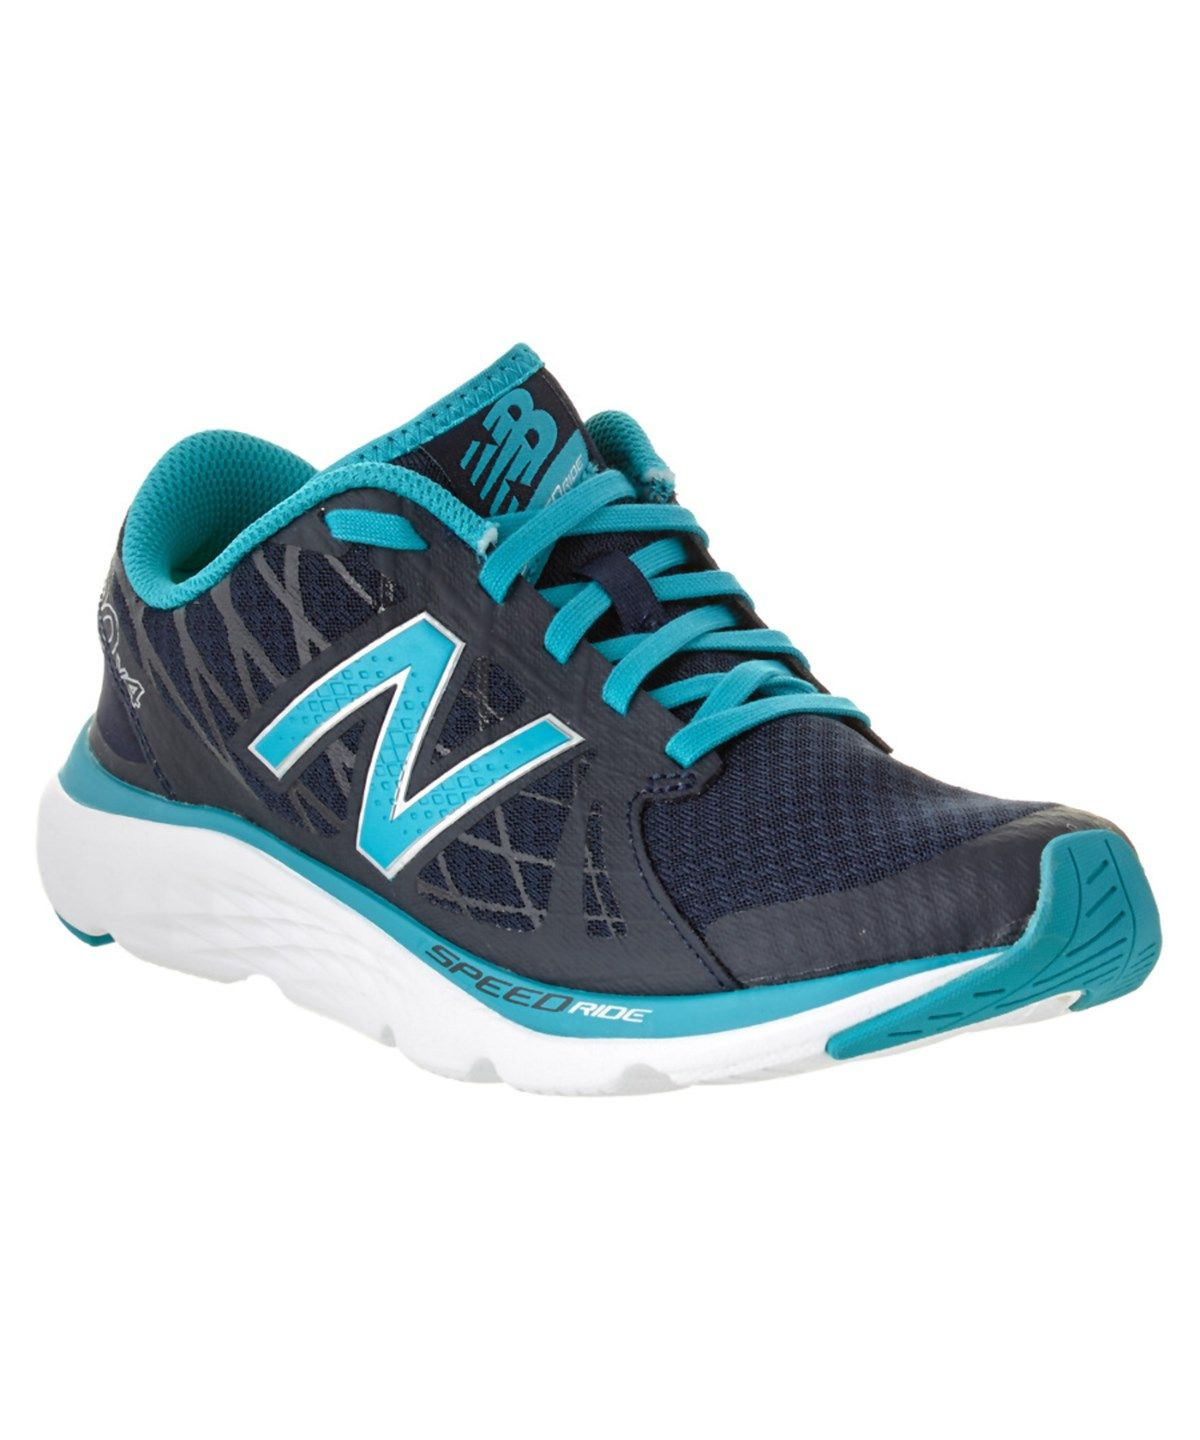 separation shoes a9976 30c1a NEW BALANCE NEW BALANCE WOMEN S 690V4 RUNNING SHOE .  newbalance  shoes   sneakers